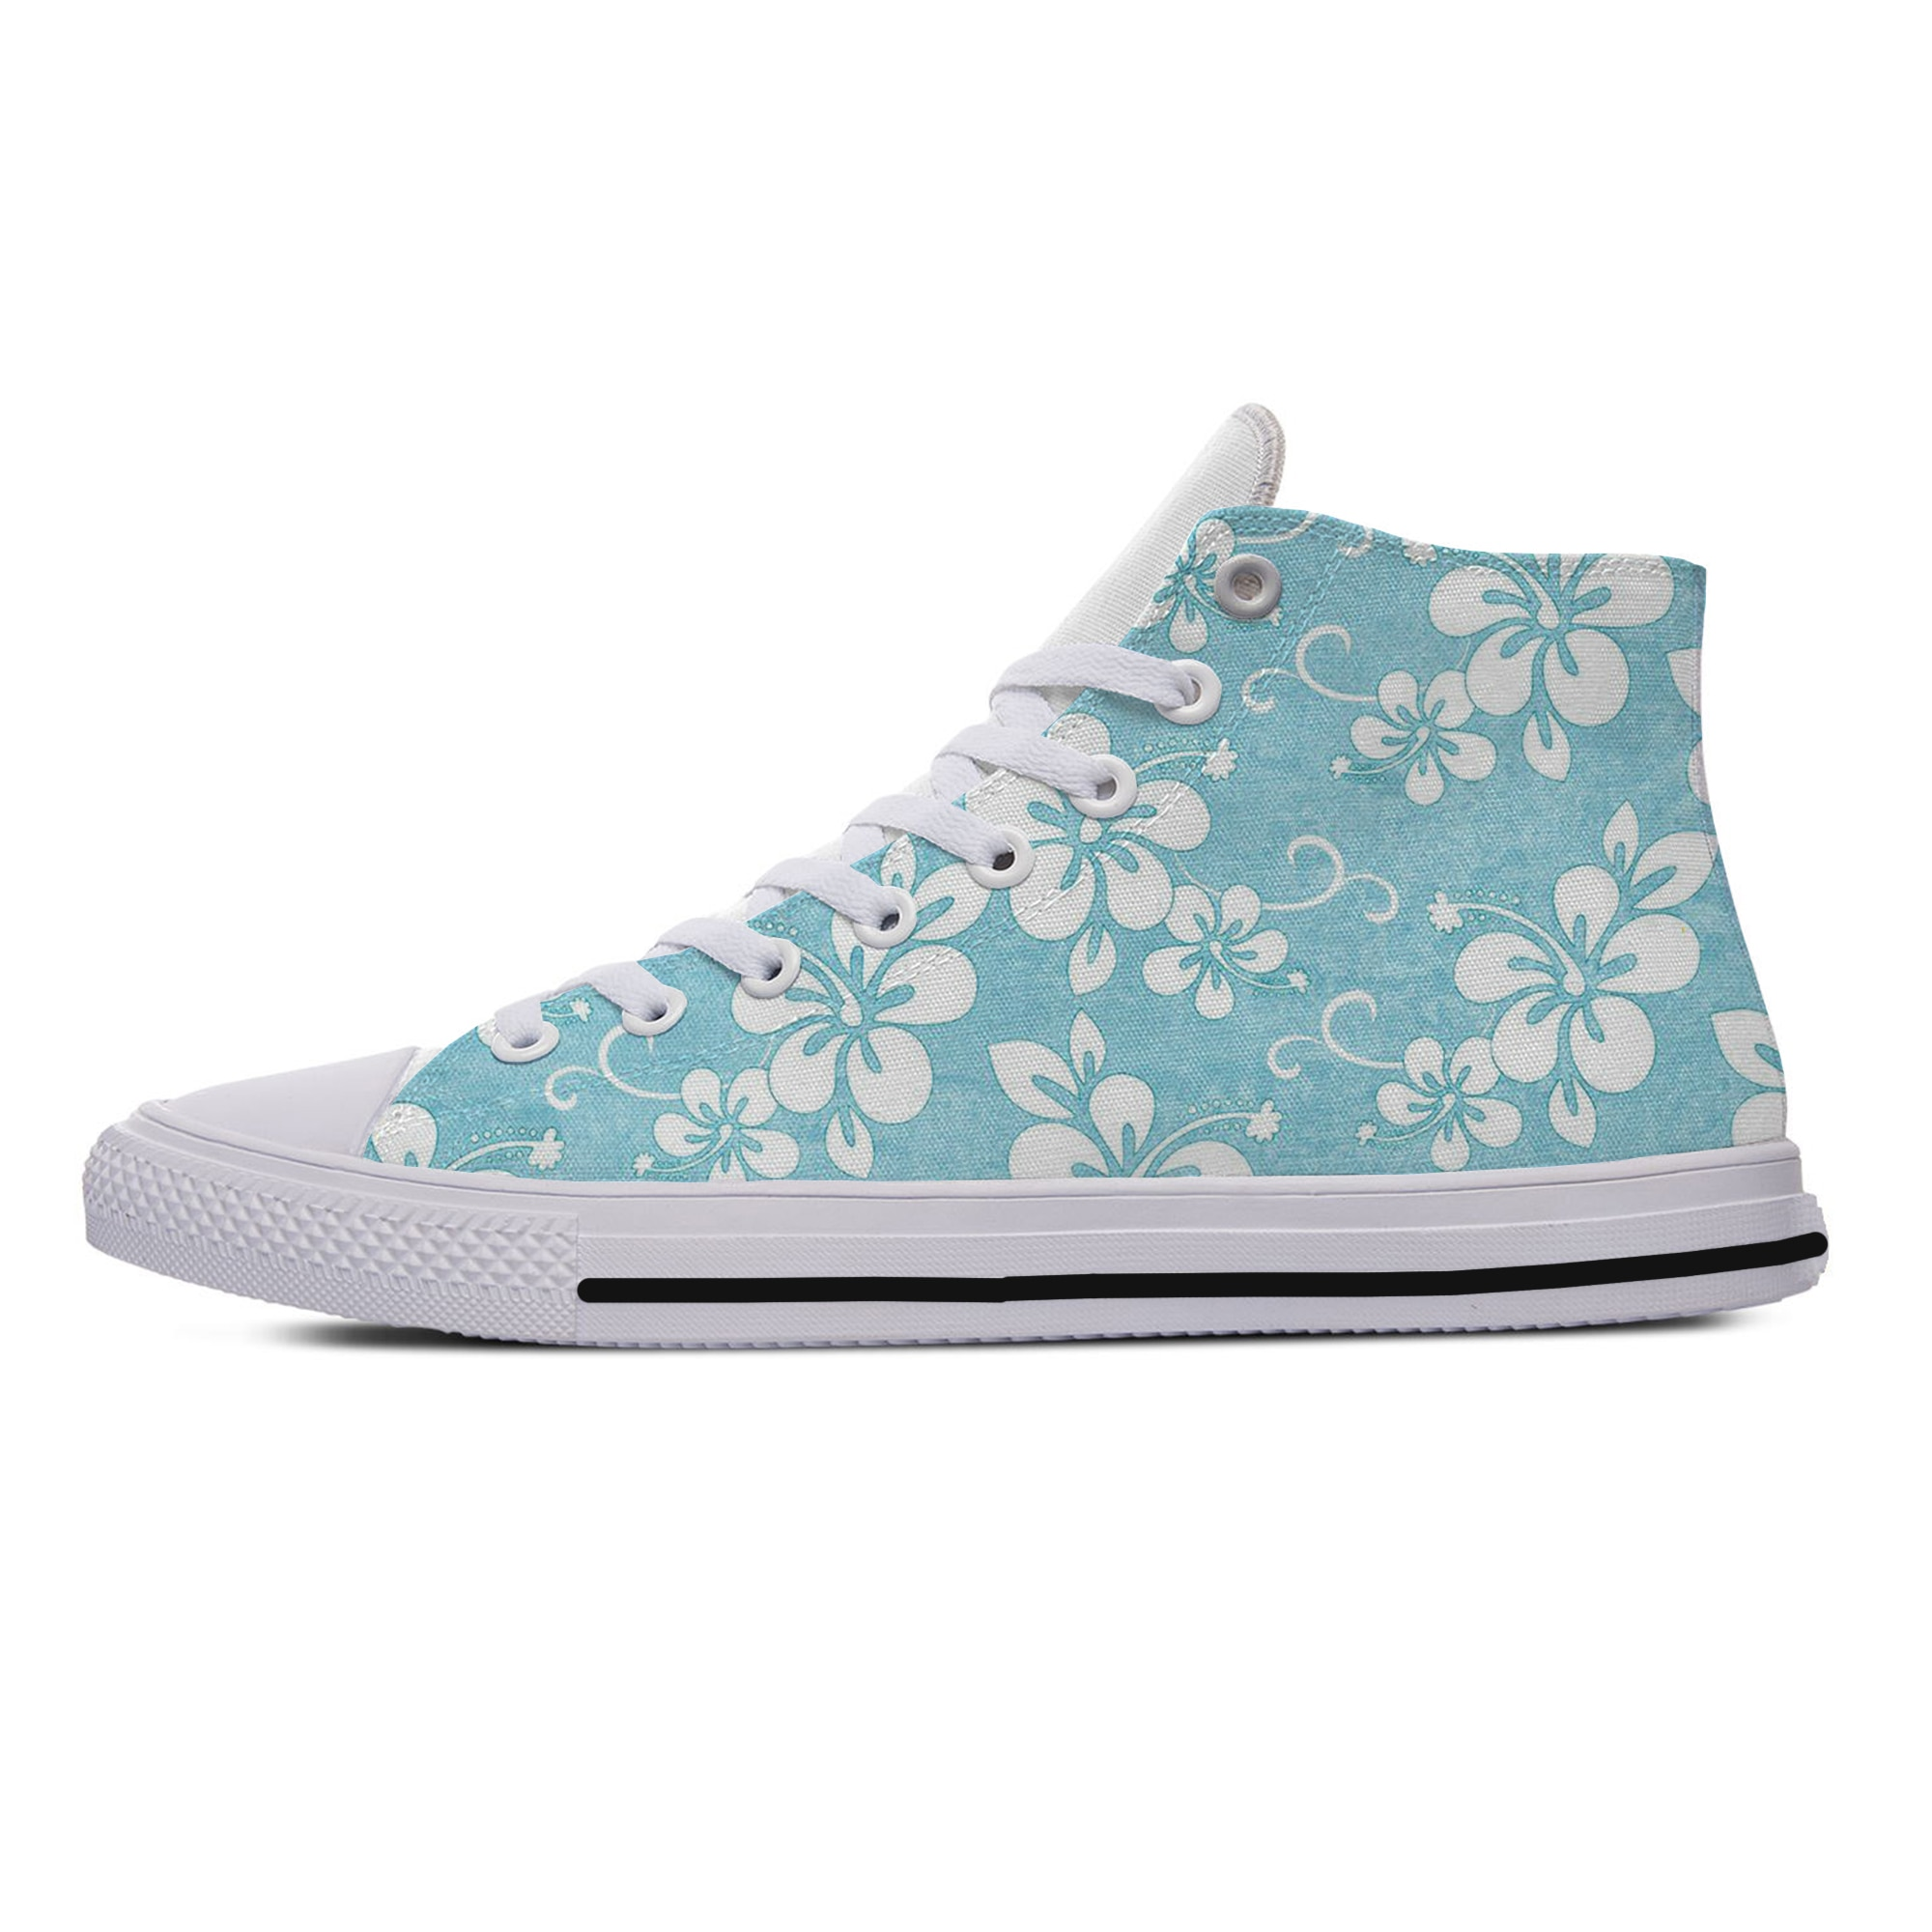 Cool Fashion Woman Man Lightweight Sneakers Breathable Casual Board Shoes High Quality Help Hot Canvas Floral